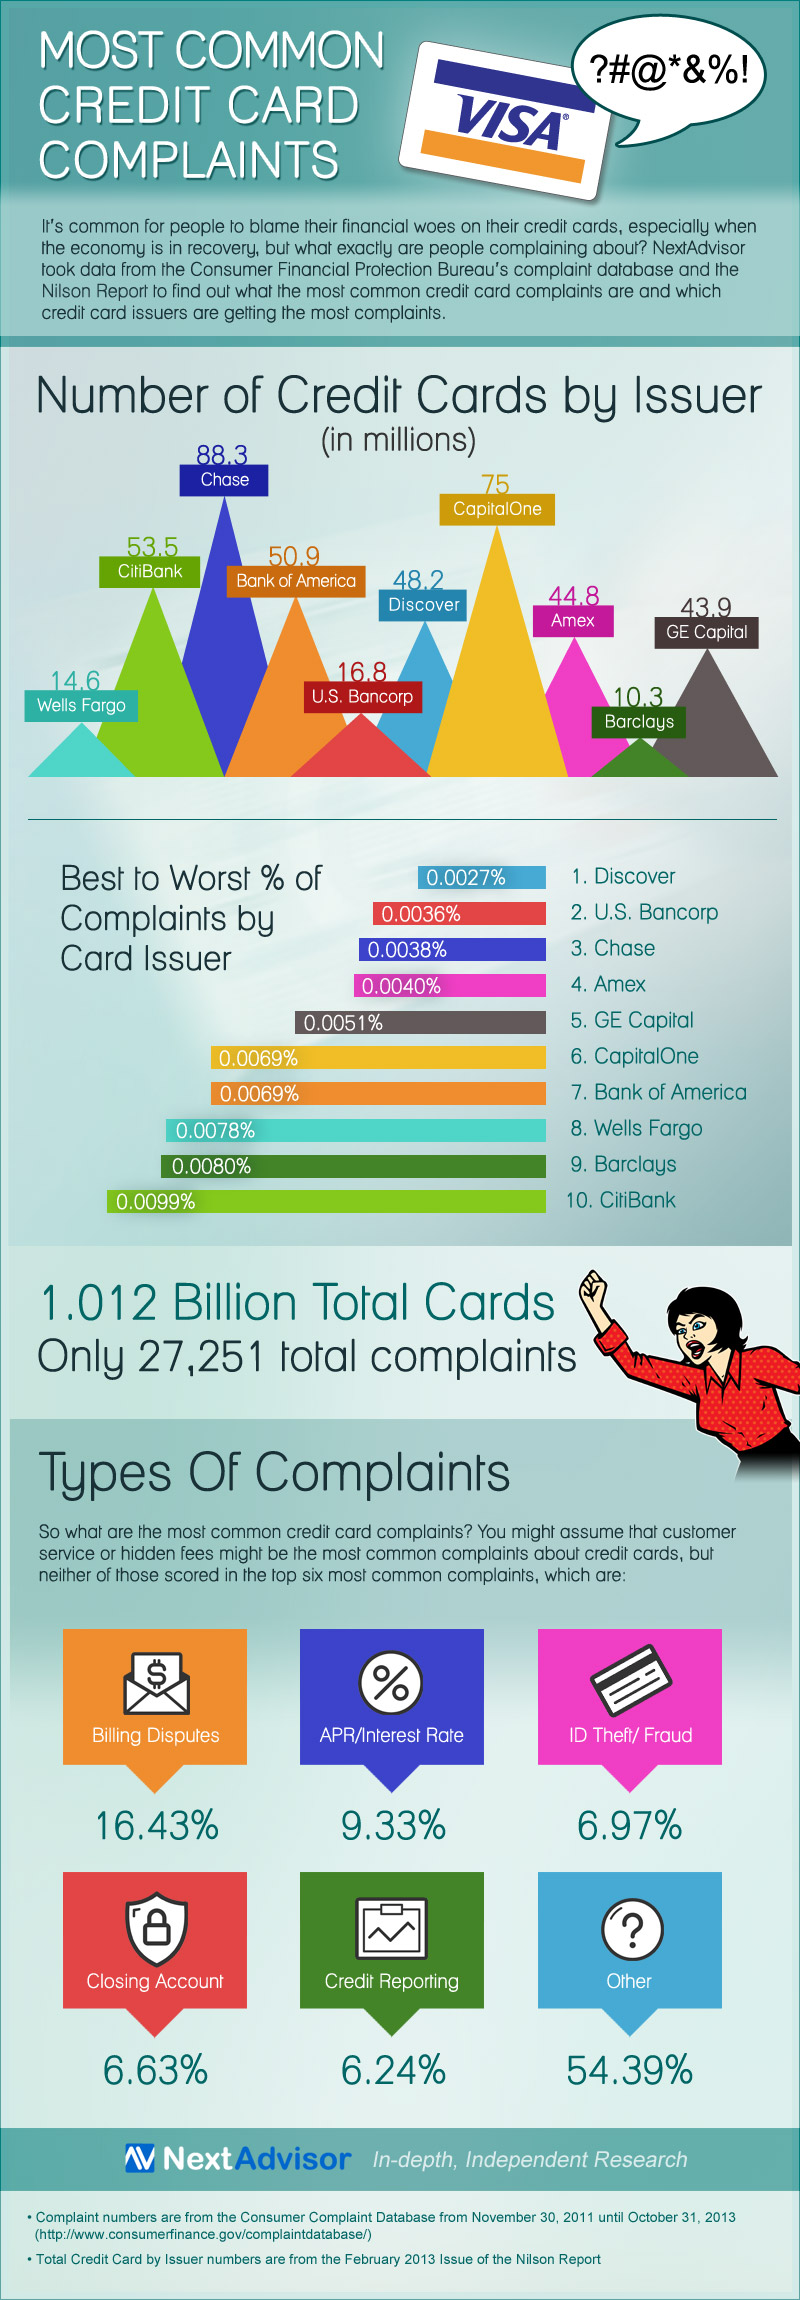 1cc-complaints-FINAL-800px.jpg